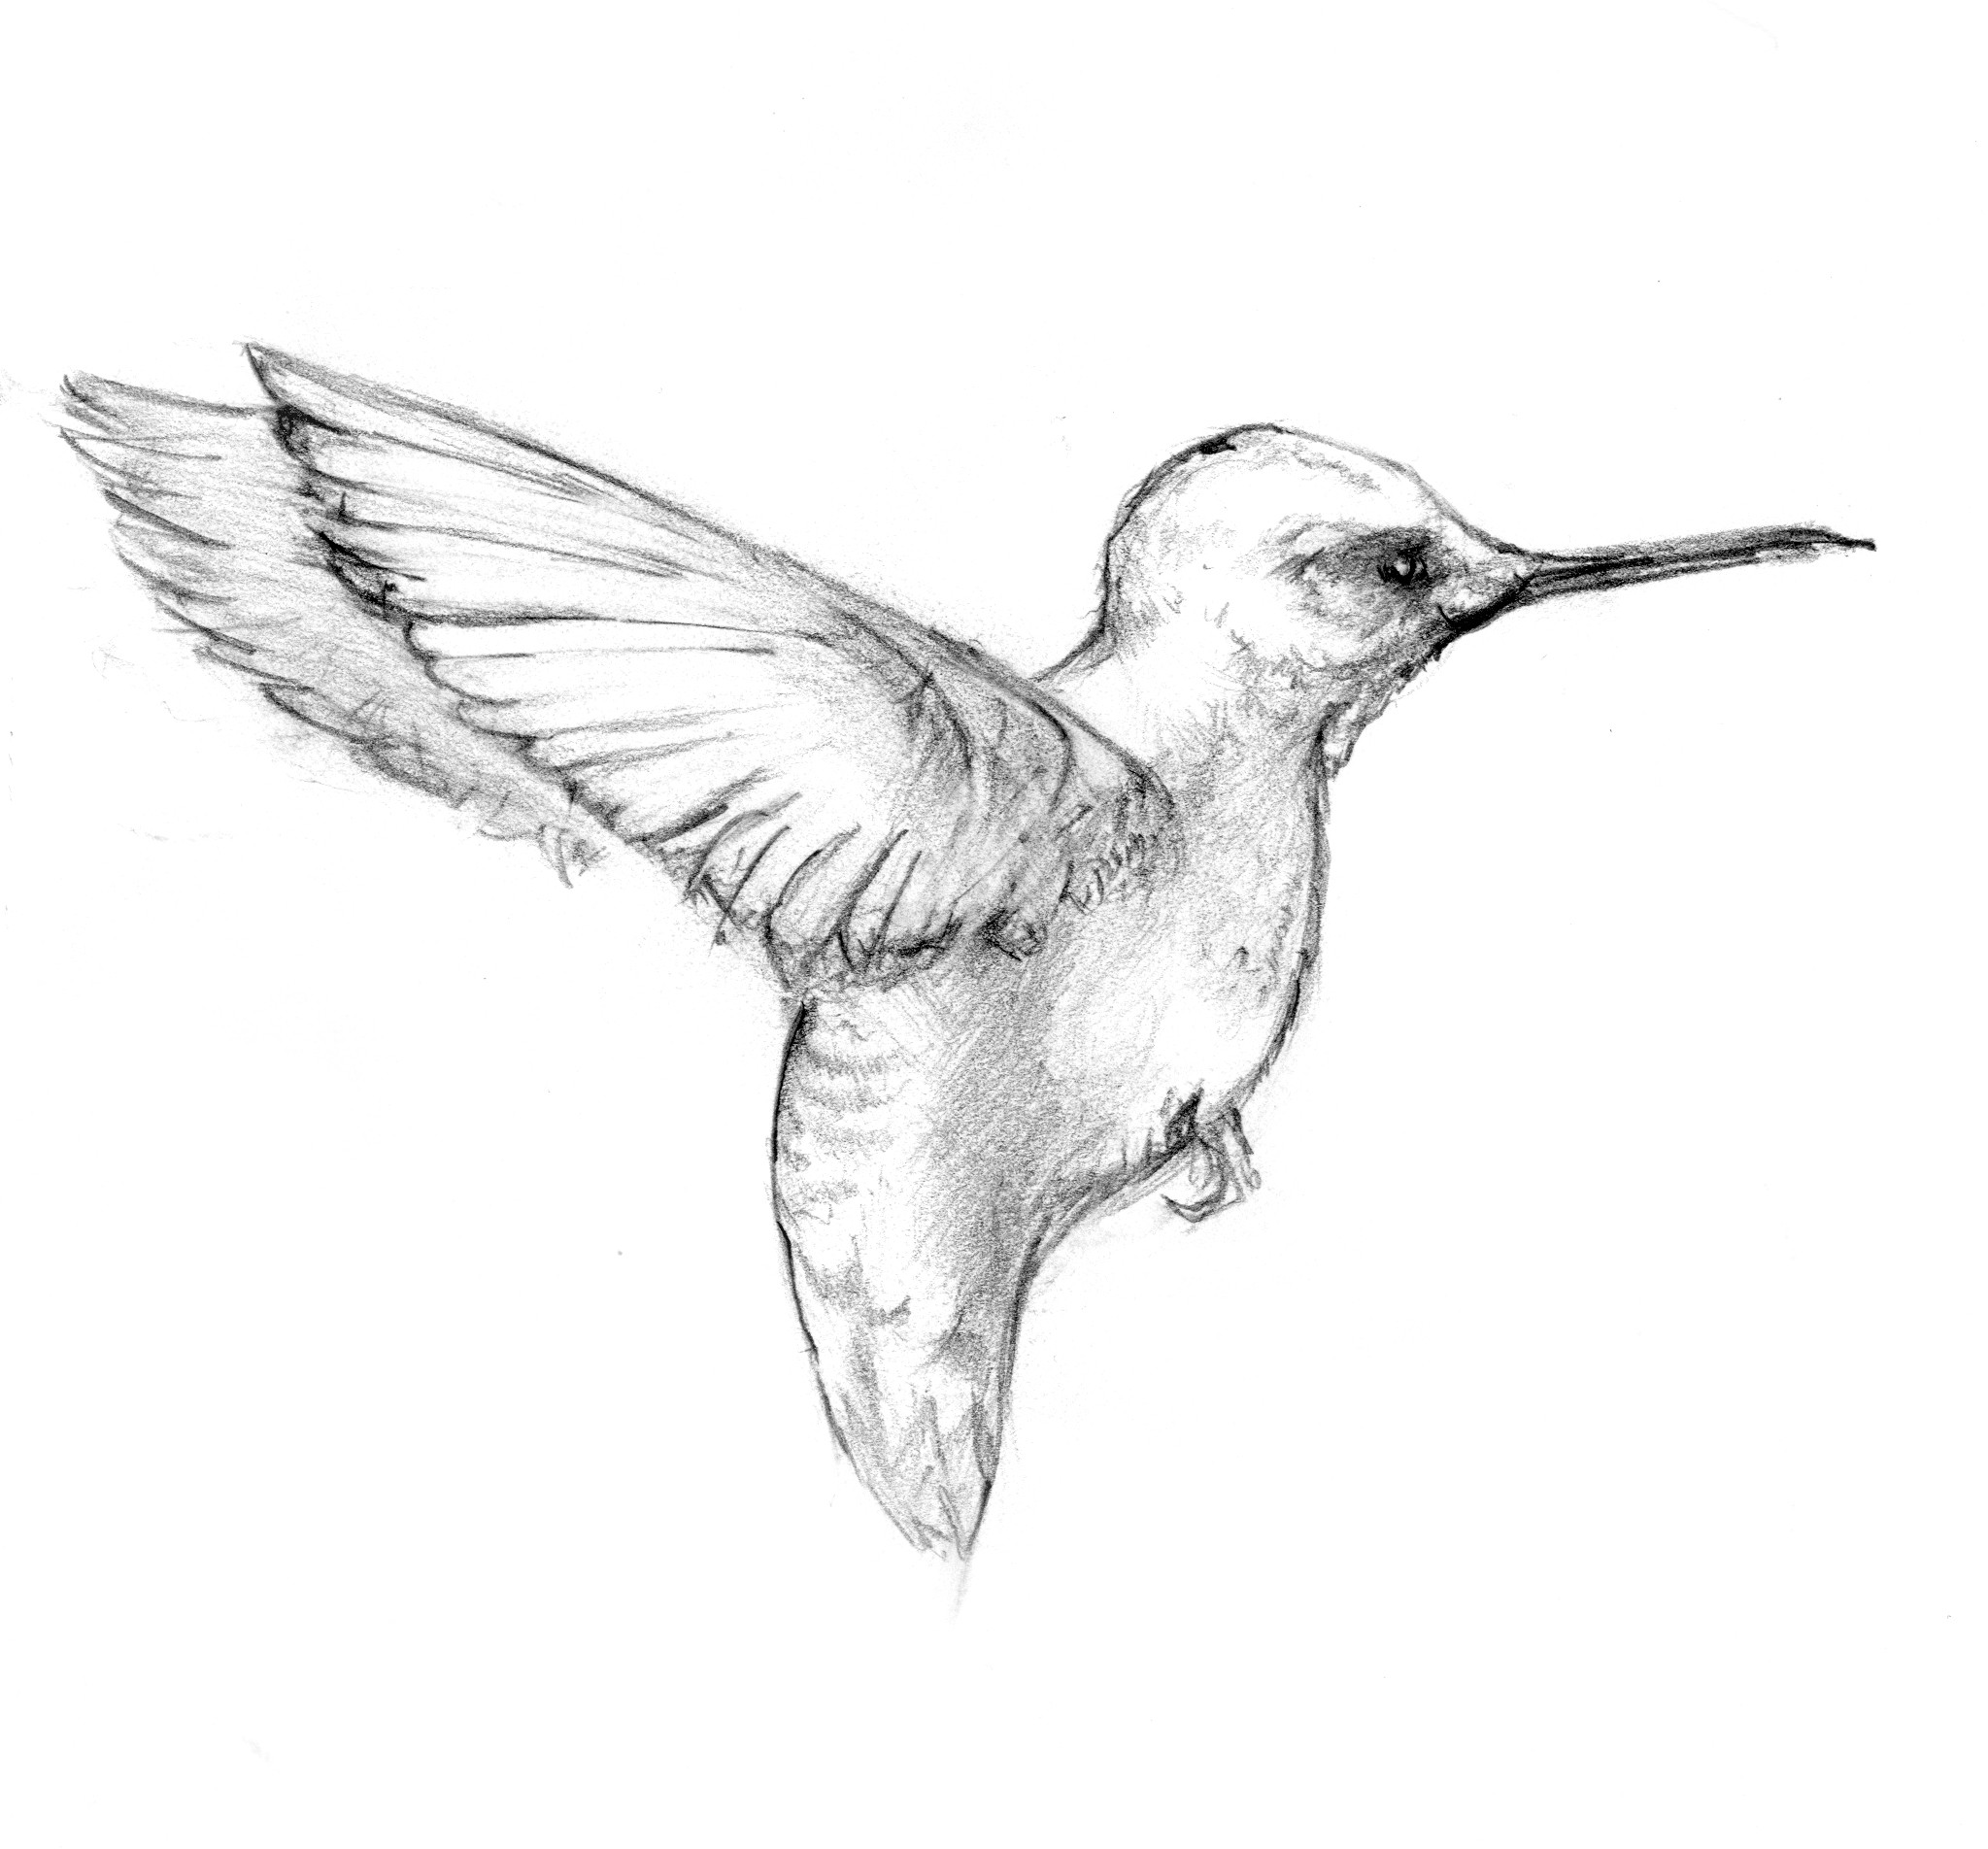 Hummingbird Sketch Images At Paintingvalley